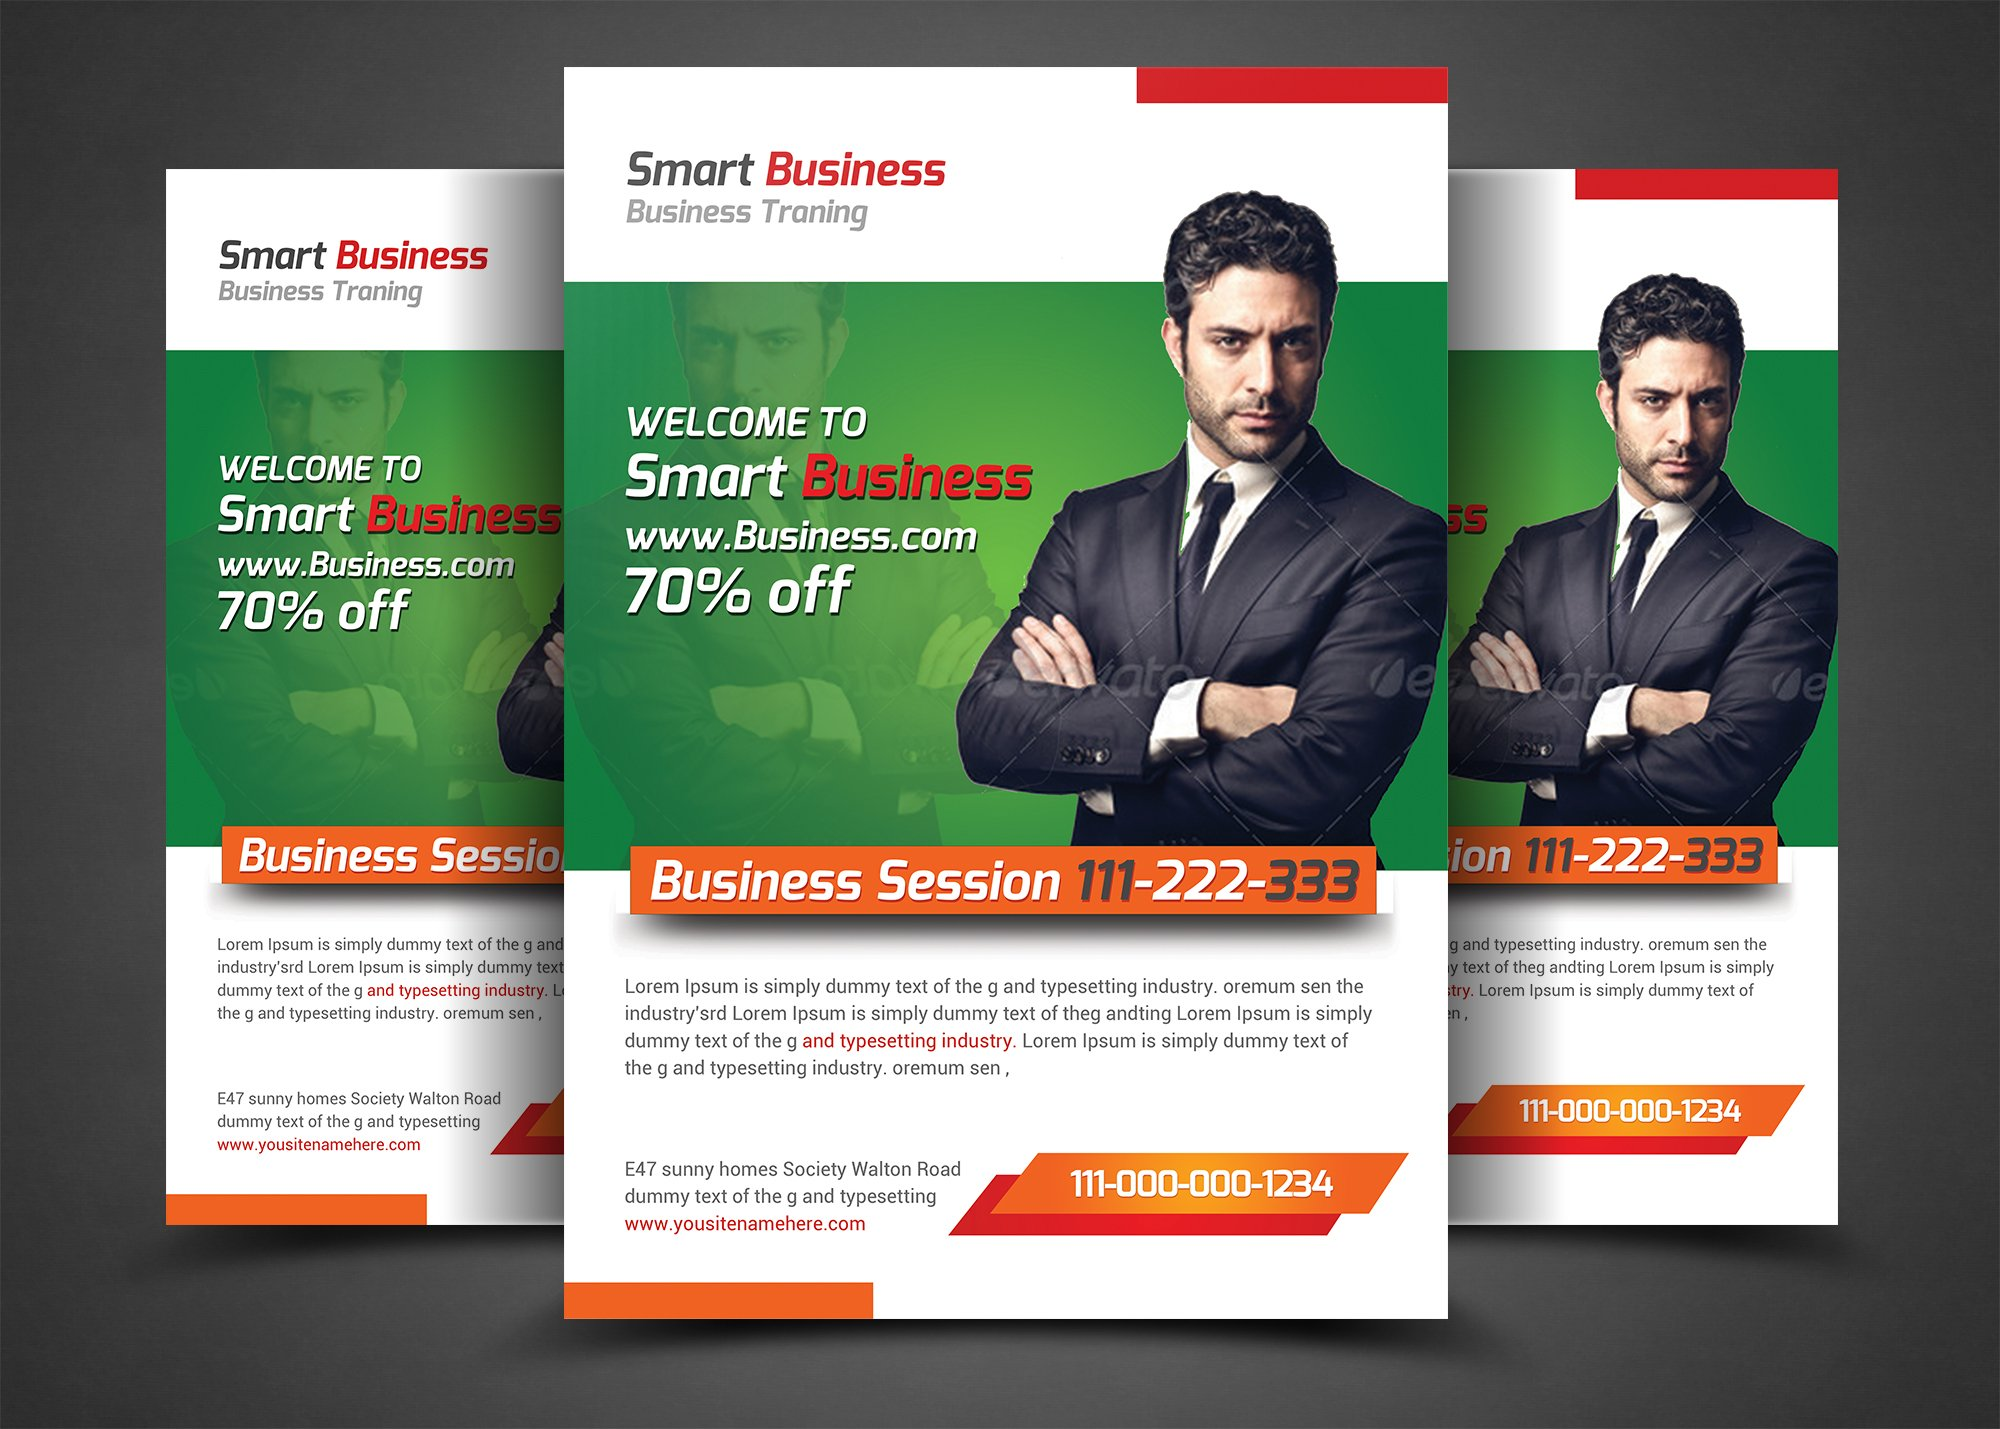 Business flyers custom flyers printed flyers overnight oukasfo tagsbusiness flyers custom flyers printed flyers overnightbusiness cards custom business cards overnight printsnextdayflyers fast same day and overnight reheart Gallery